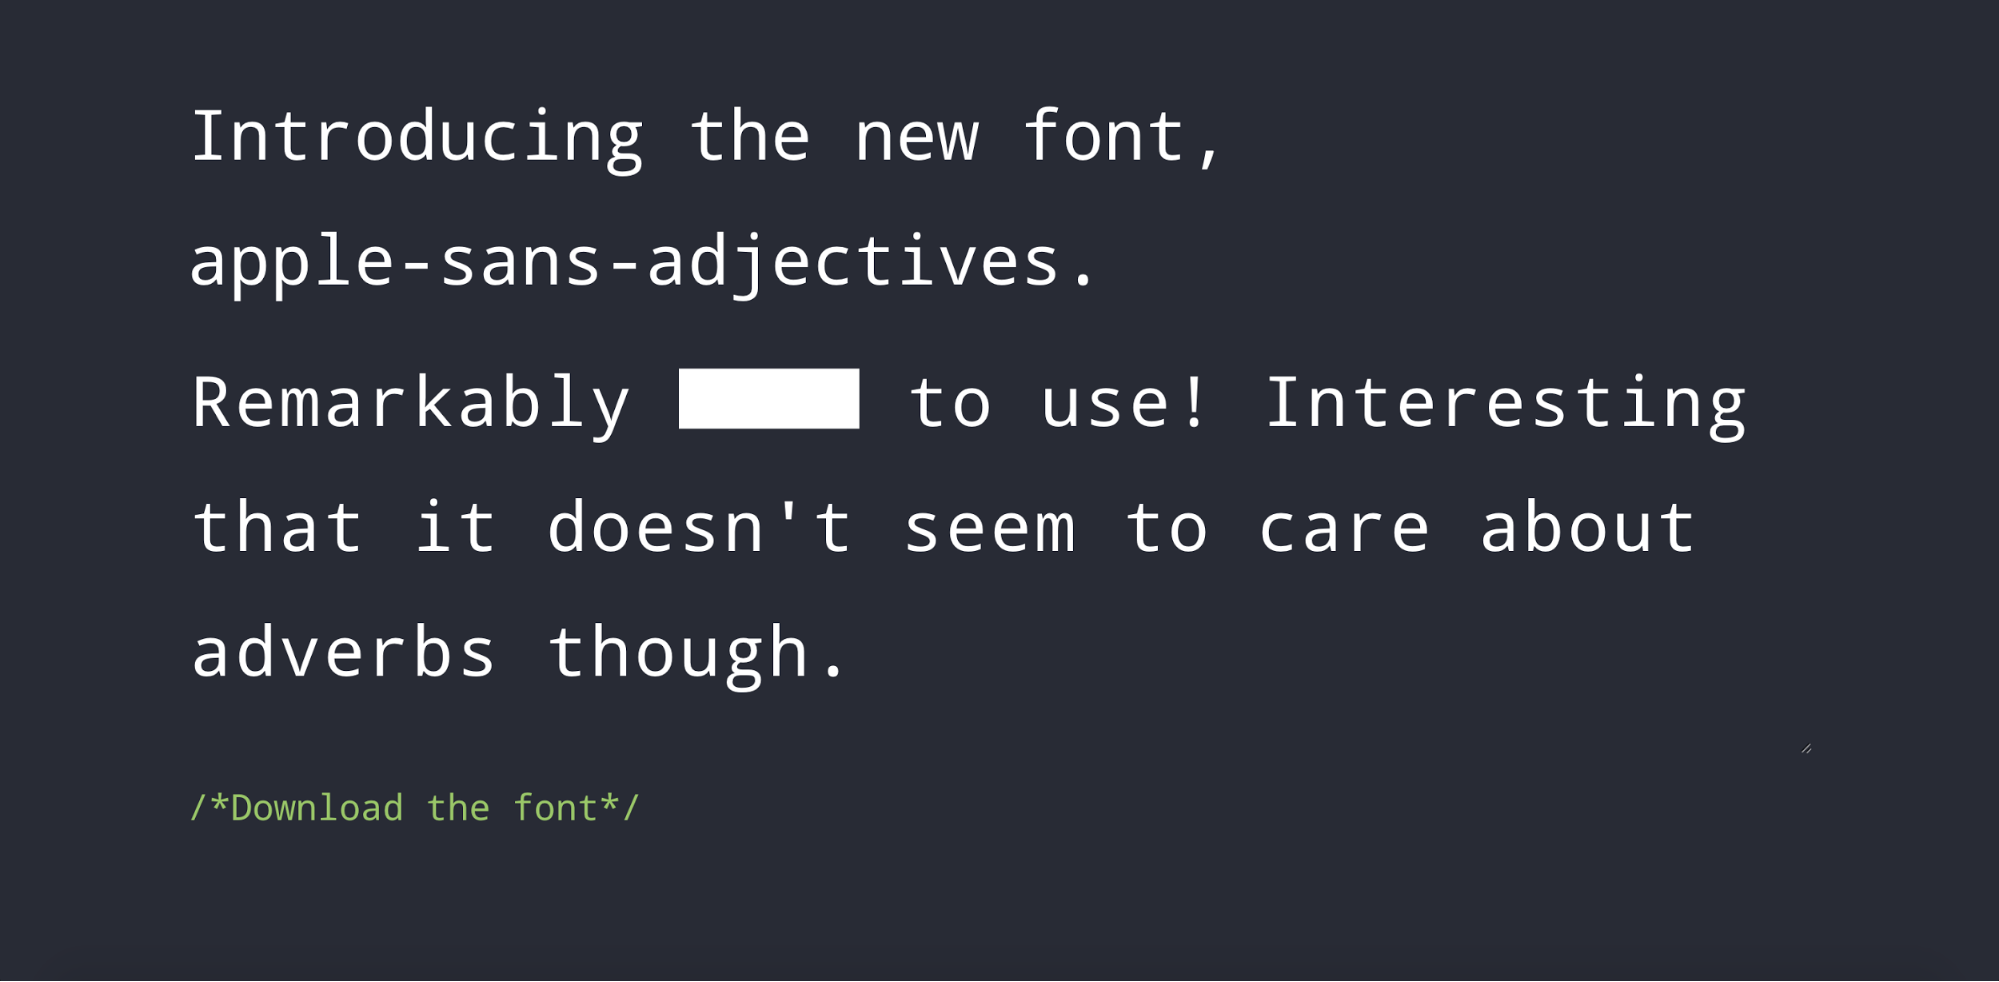 The Apple Sans Adjective font censors adjectives for you